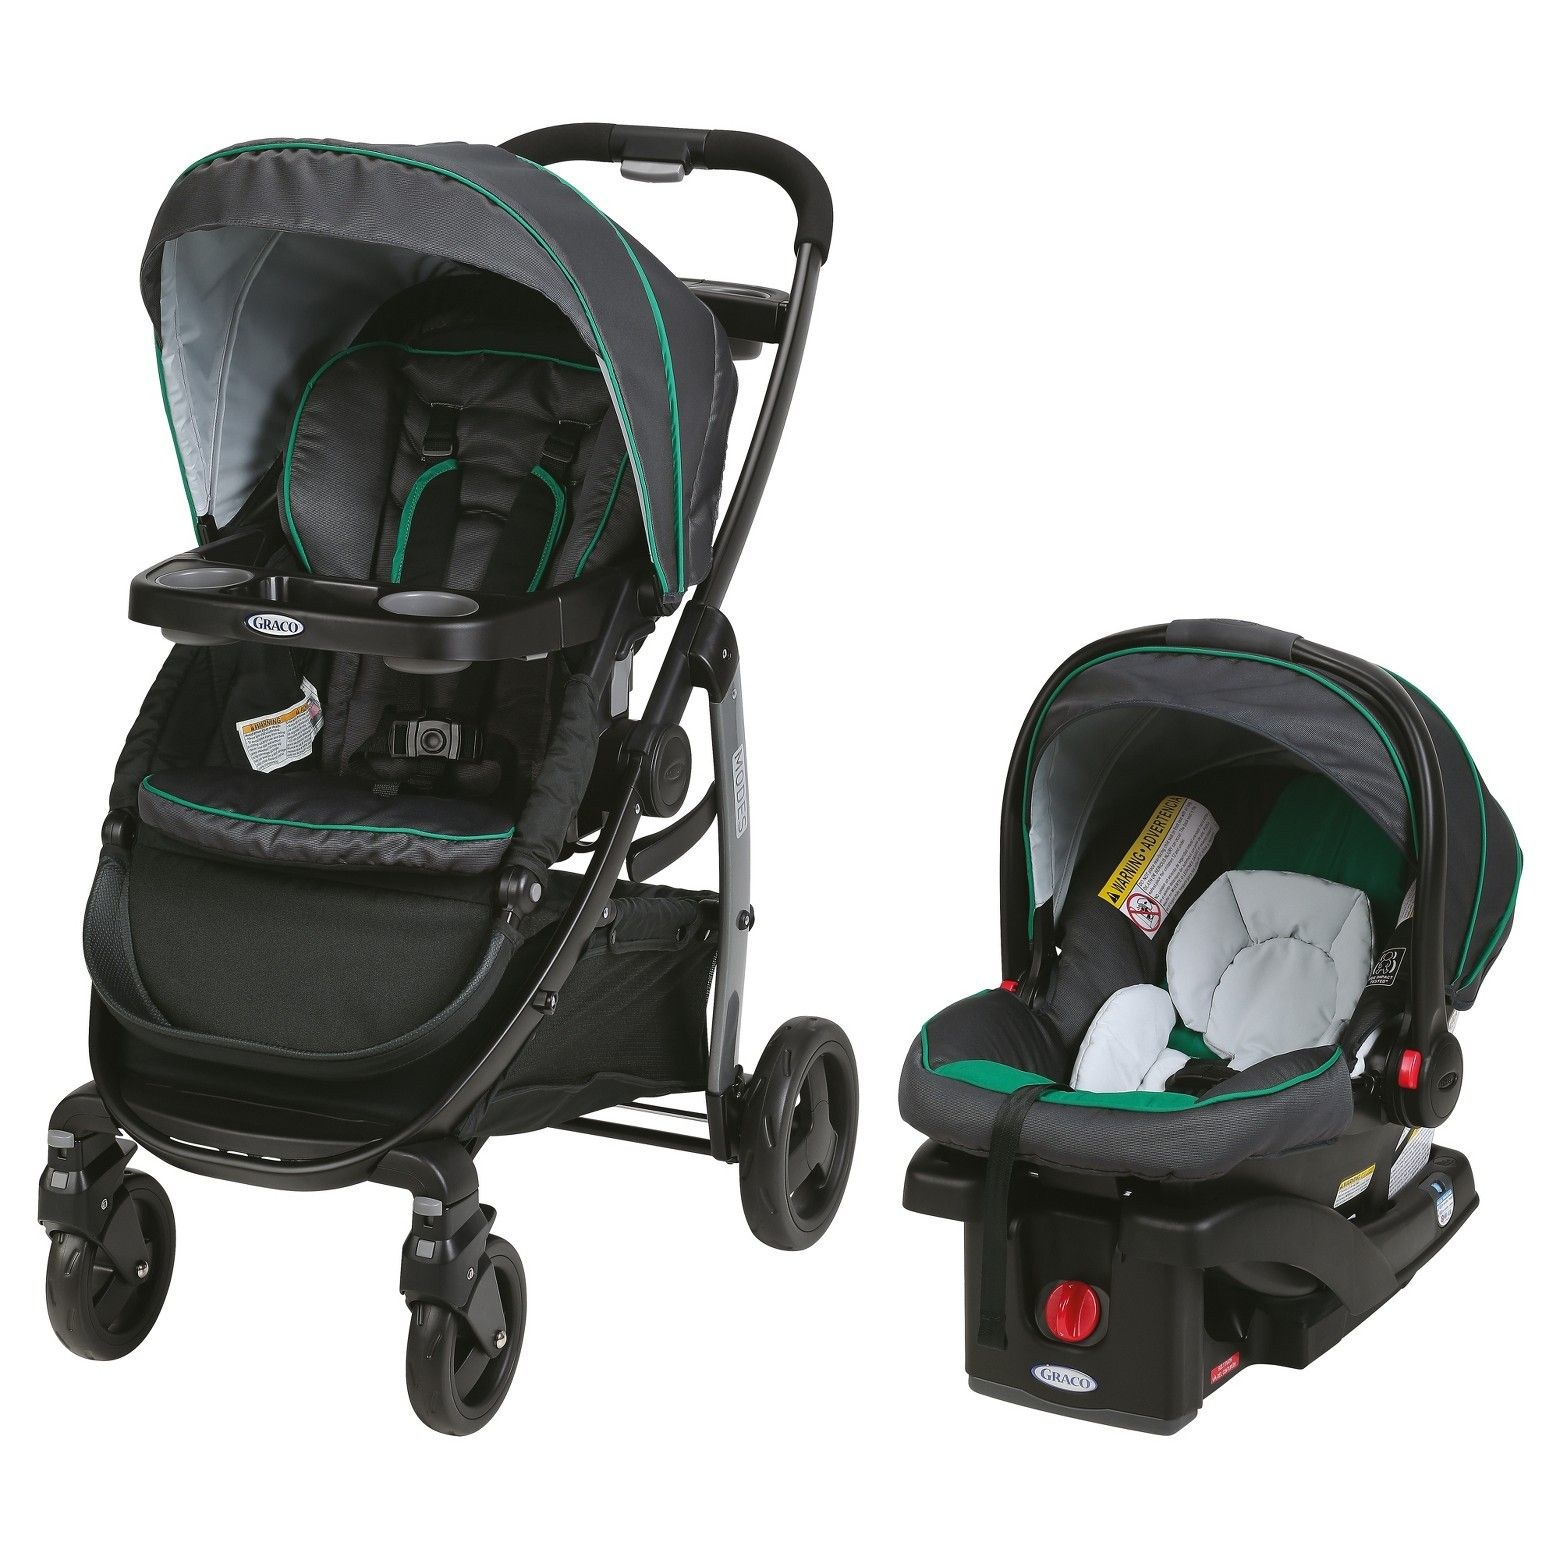 15+ Graco stroller accessories tray ideas in 2021